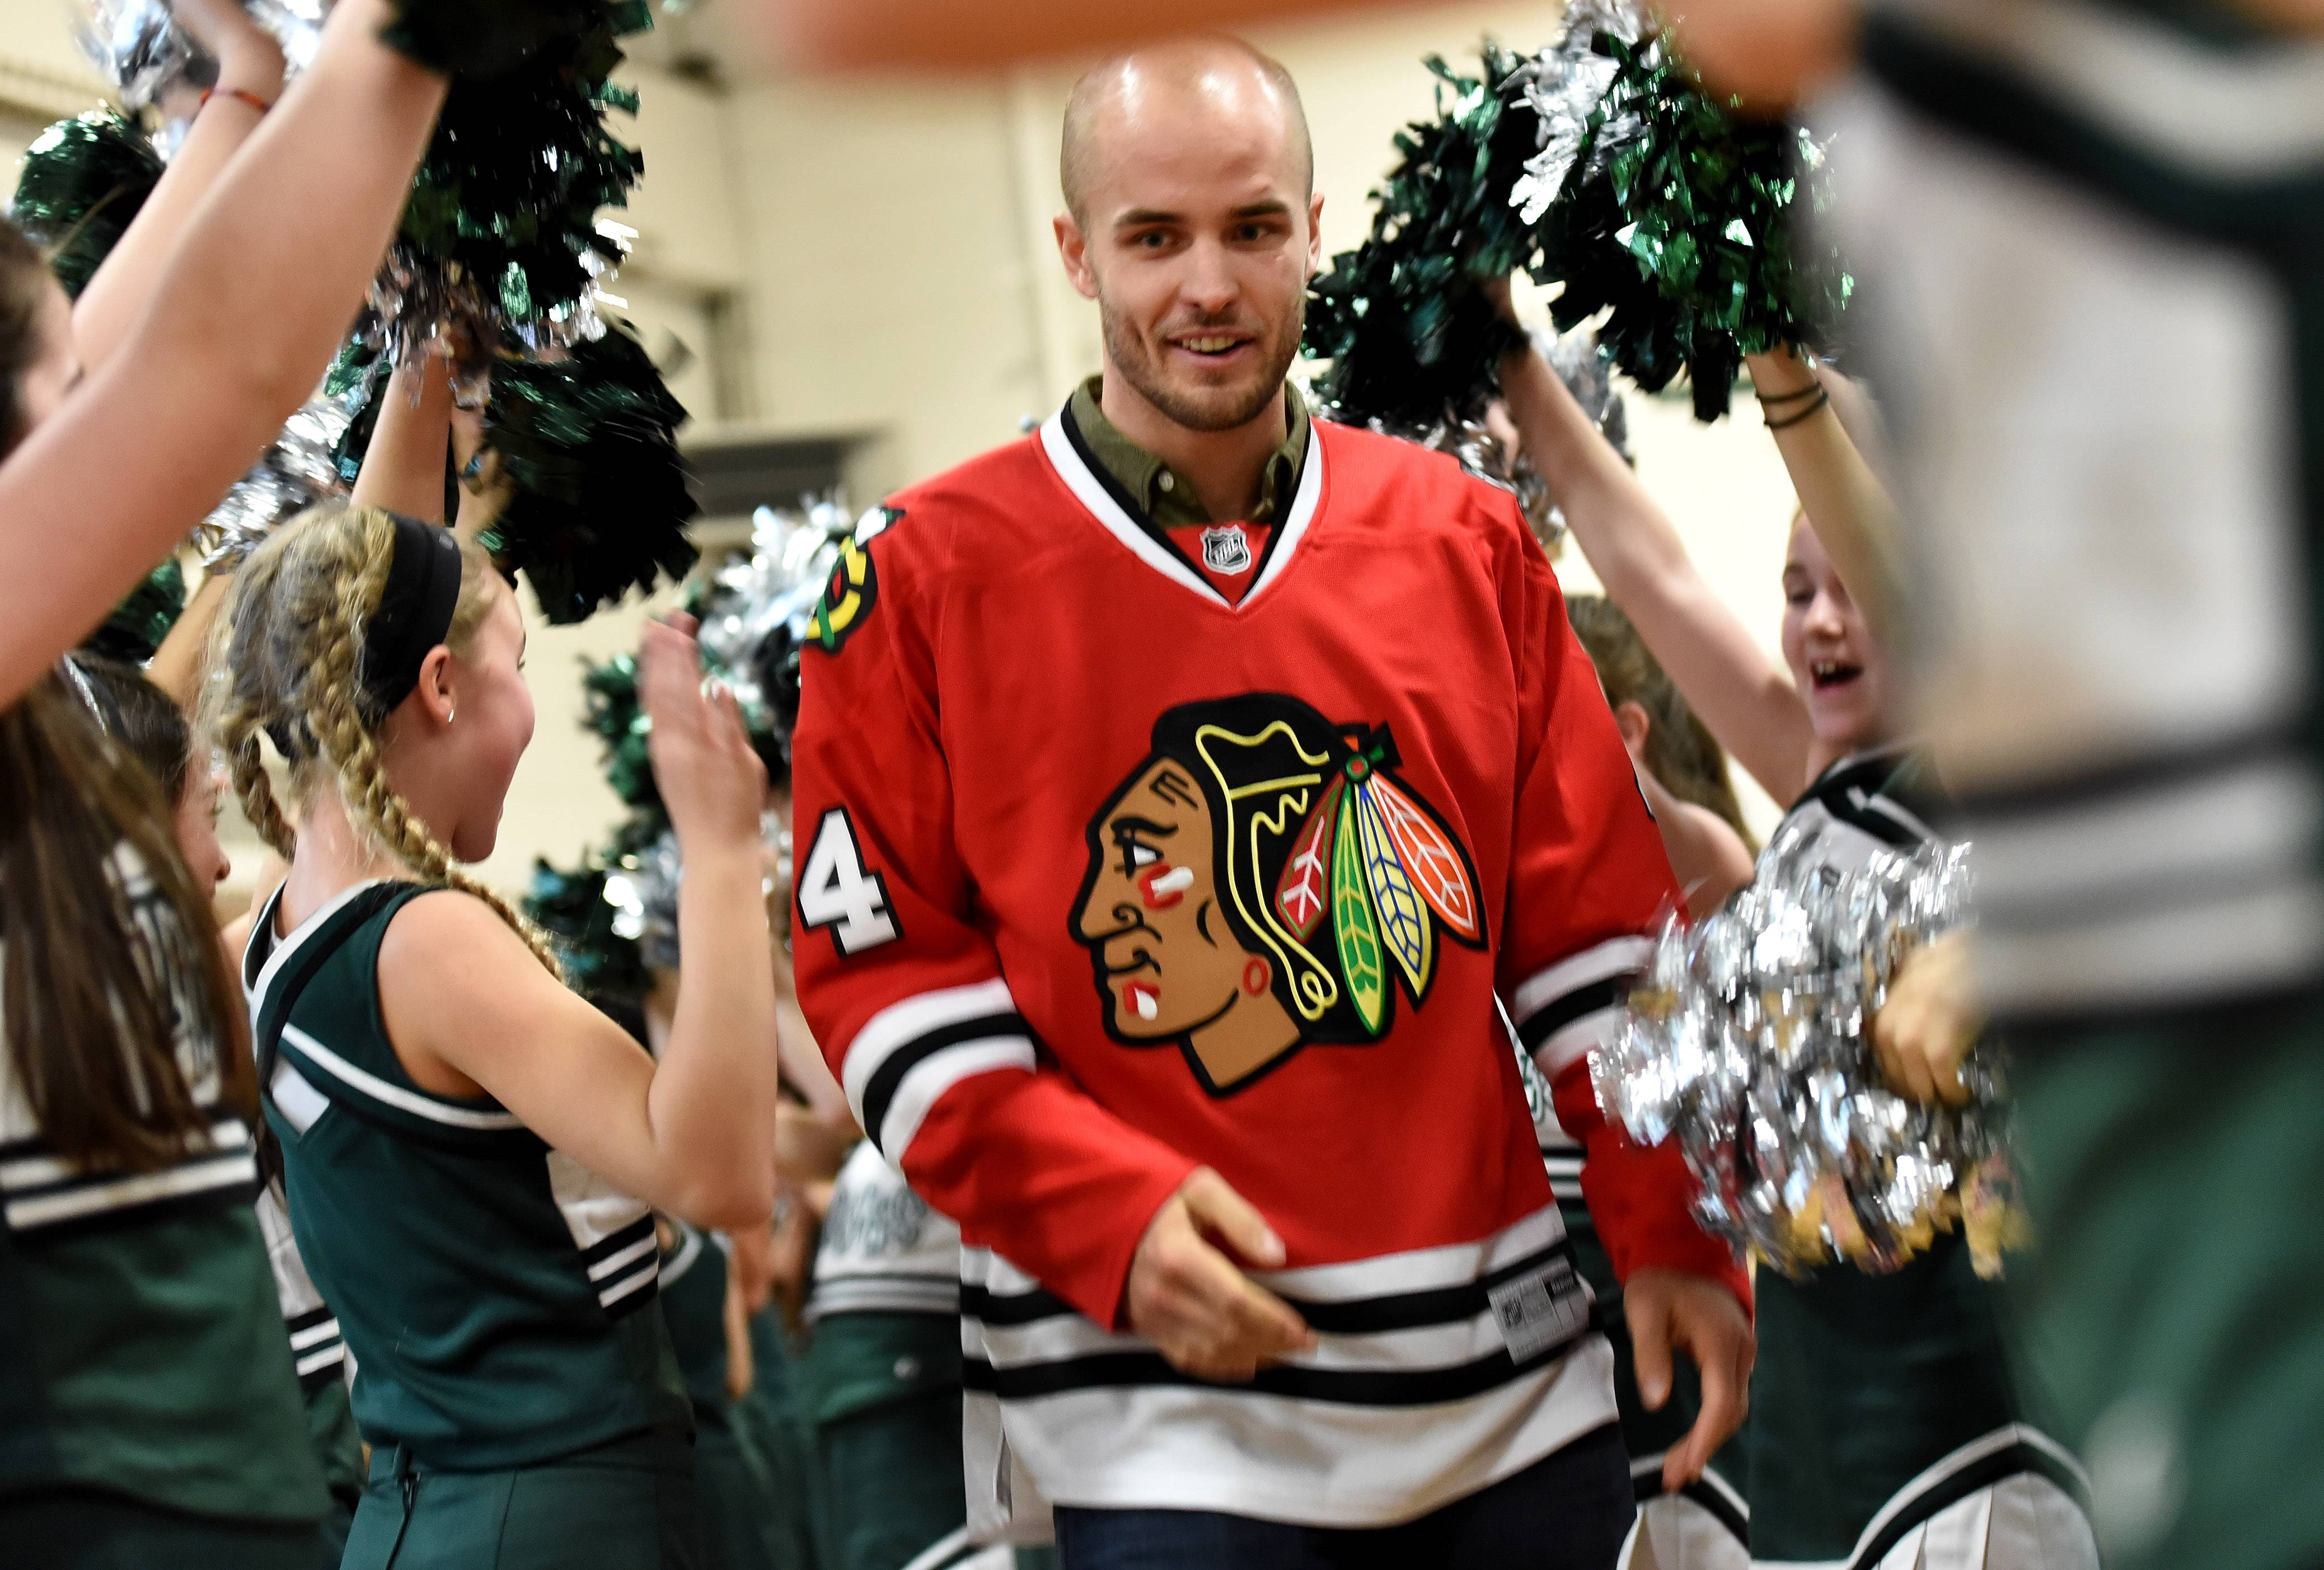 Chicago Blackhawks defenseman Niklas Hjalmarsson runs the gauntlet of cheerleaders and pom pon girls during his vistit to Thomas Middle Schoolin Arlington Heights. His visit was to help recognize the school's efforts in the Pass it On Donation Challenge.